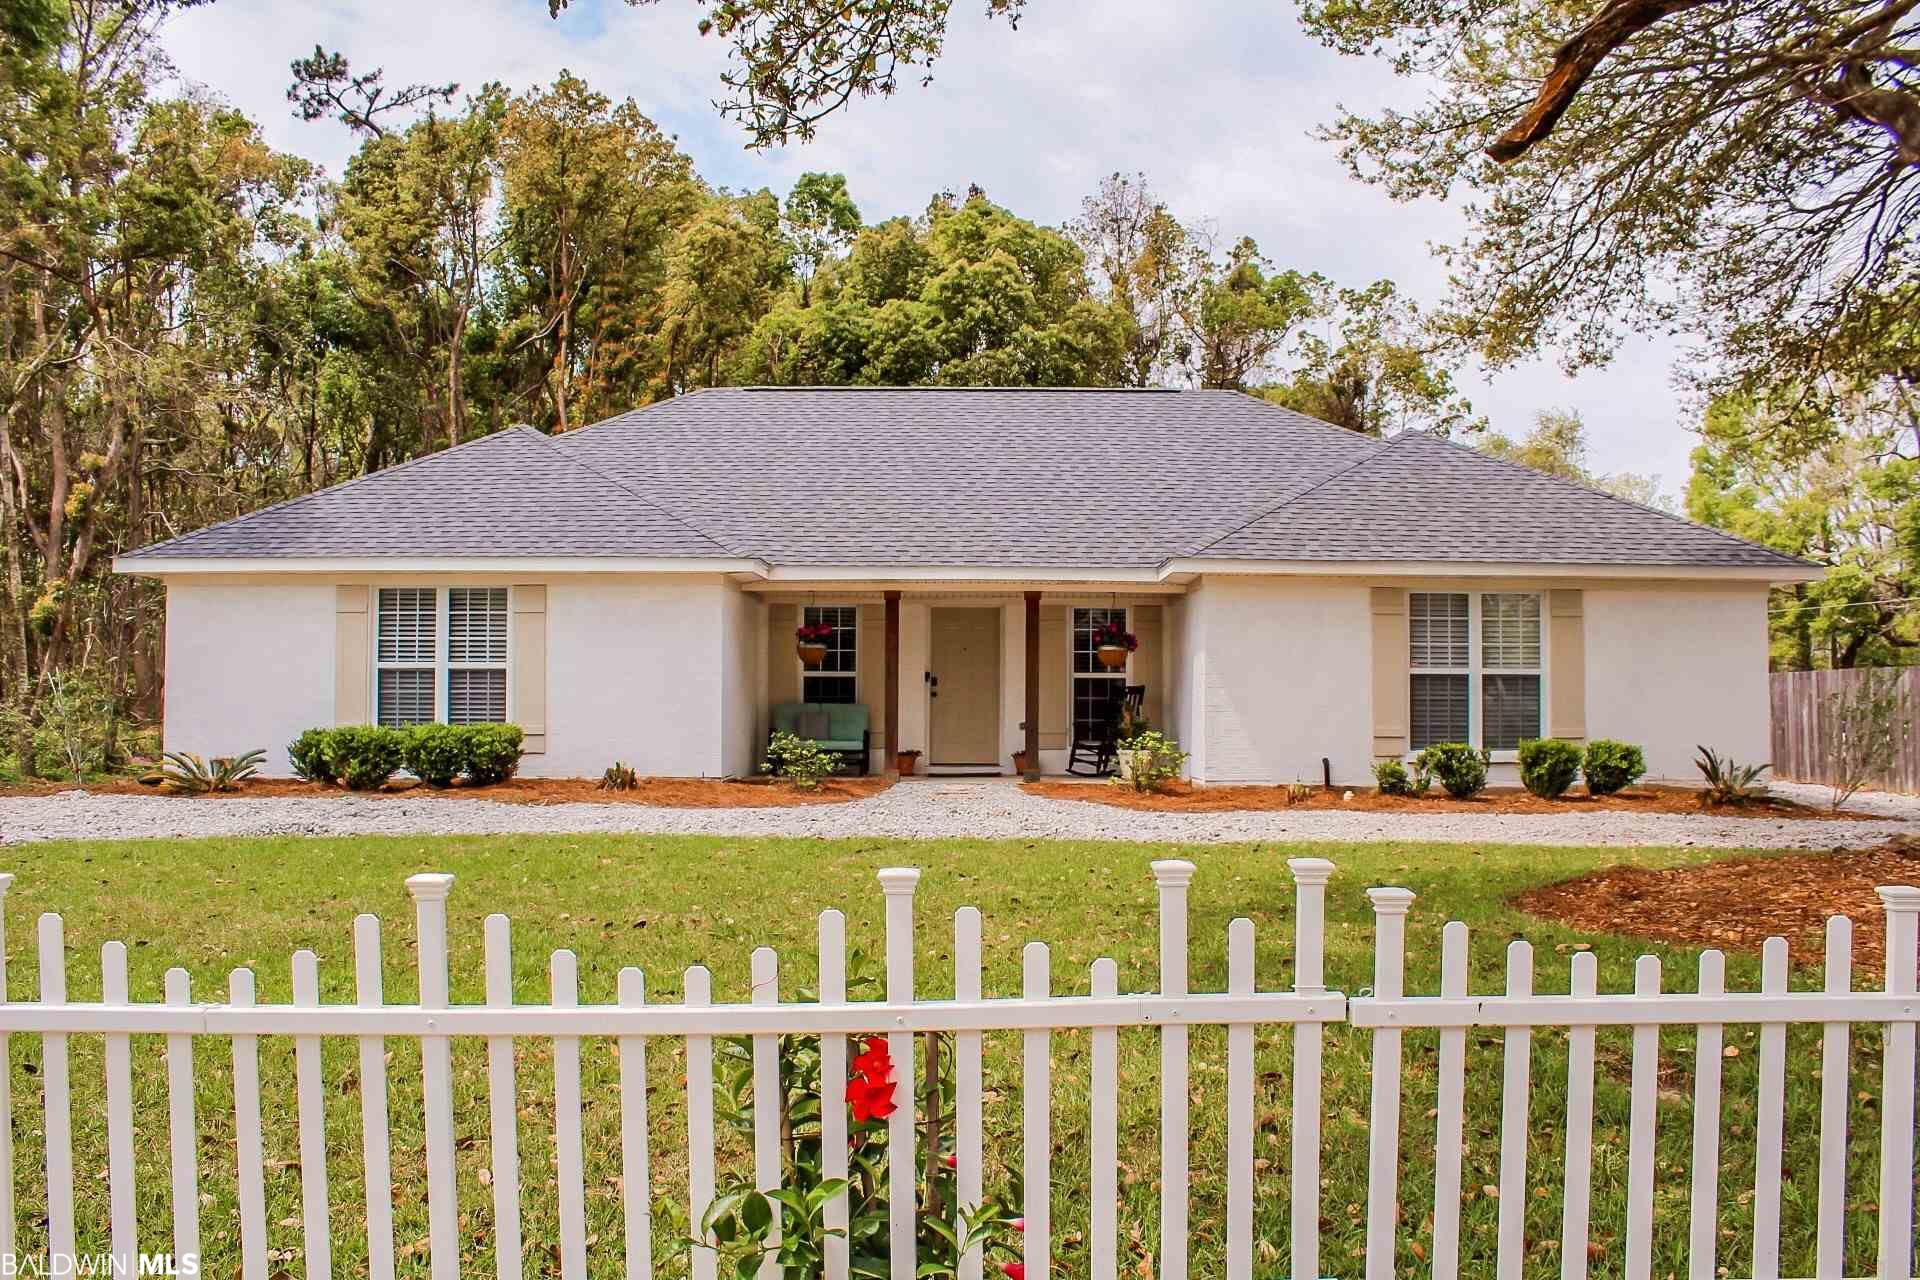 COASTAL meets COTTAGE living in Fairhope.  Close to the hospital, tennis courts & downtown. Fenced corner lot and private green space currently surrounds this painted brick home.  Bronze certified NEW ROOF and CIRCULAR drive is one of the many updates. 12x12 outside deck with canvas sail cloth canopy for entertaining & fire pit. Shed is 10x10 and has a lean to for bikes. Double french doors from patio to morning room.  Open concept living with all hard surface floors in the main areas.  New carpet in the bedrooms. Great room has soaring ceiling  with a wood burning FIREPLACE. MARBLE countertops, island and back splash. Coffee Bar & pantry. Drop in sink with sunny kitchen window above. Refrigerator conveys. SPLIT bedroom Plan. Master en suite has large soaking tub & sep. shower. Gigantic master closet.  Bedroom#2 & #3 have jack & jill baths with an additional bath area with private sink for guests.   Sliding BARN DOORS and large closets in each room.  Newly landscaped exterior with HIGH END LIMESTONE GRAVEL and NEW SOD AND STRAW!! BRING YOUR GOLF CART AND RIDE TO FIRST FRIDAY BEFORE THIS ONE IS SOLD!